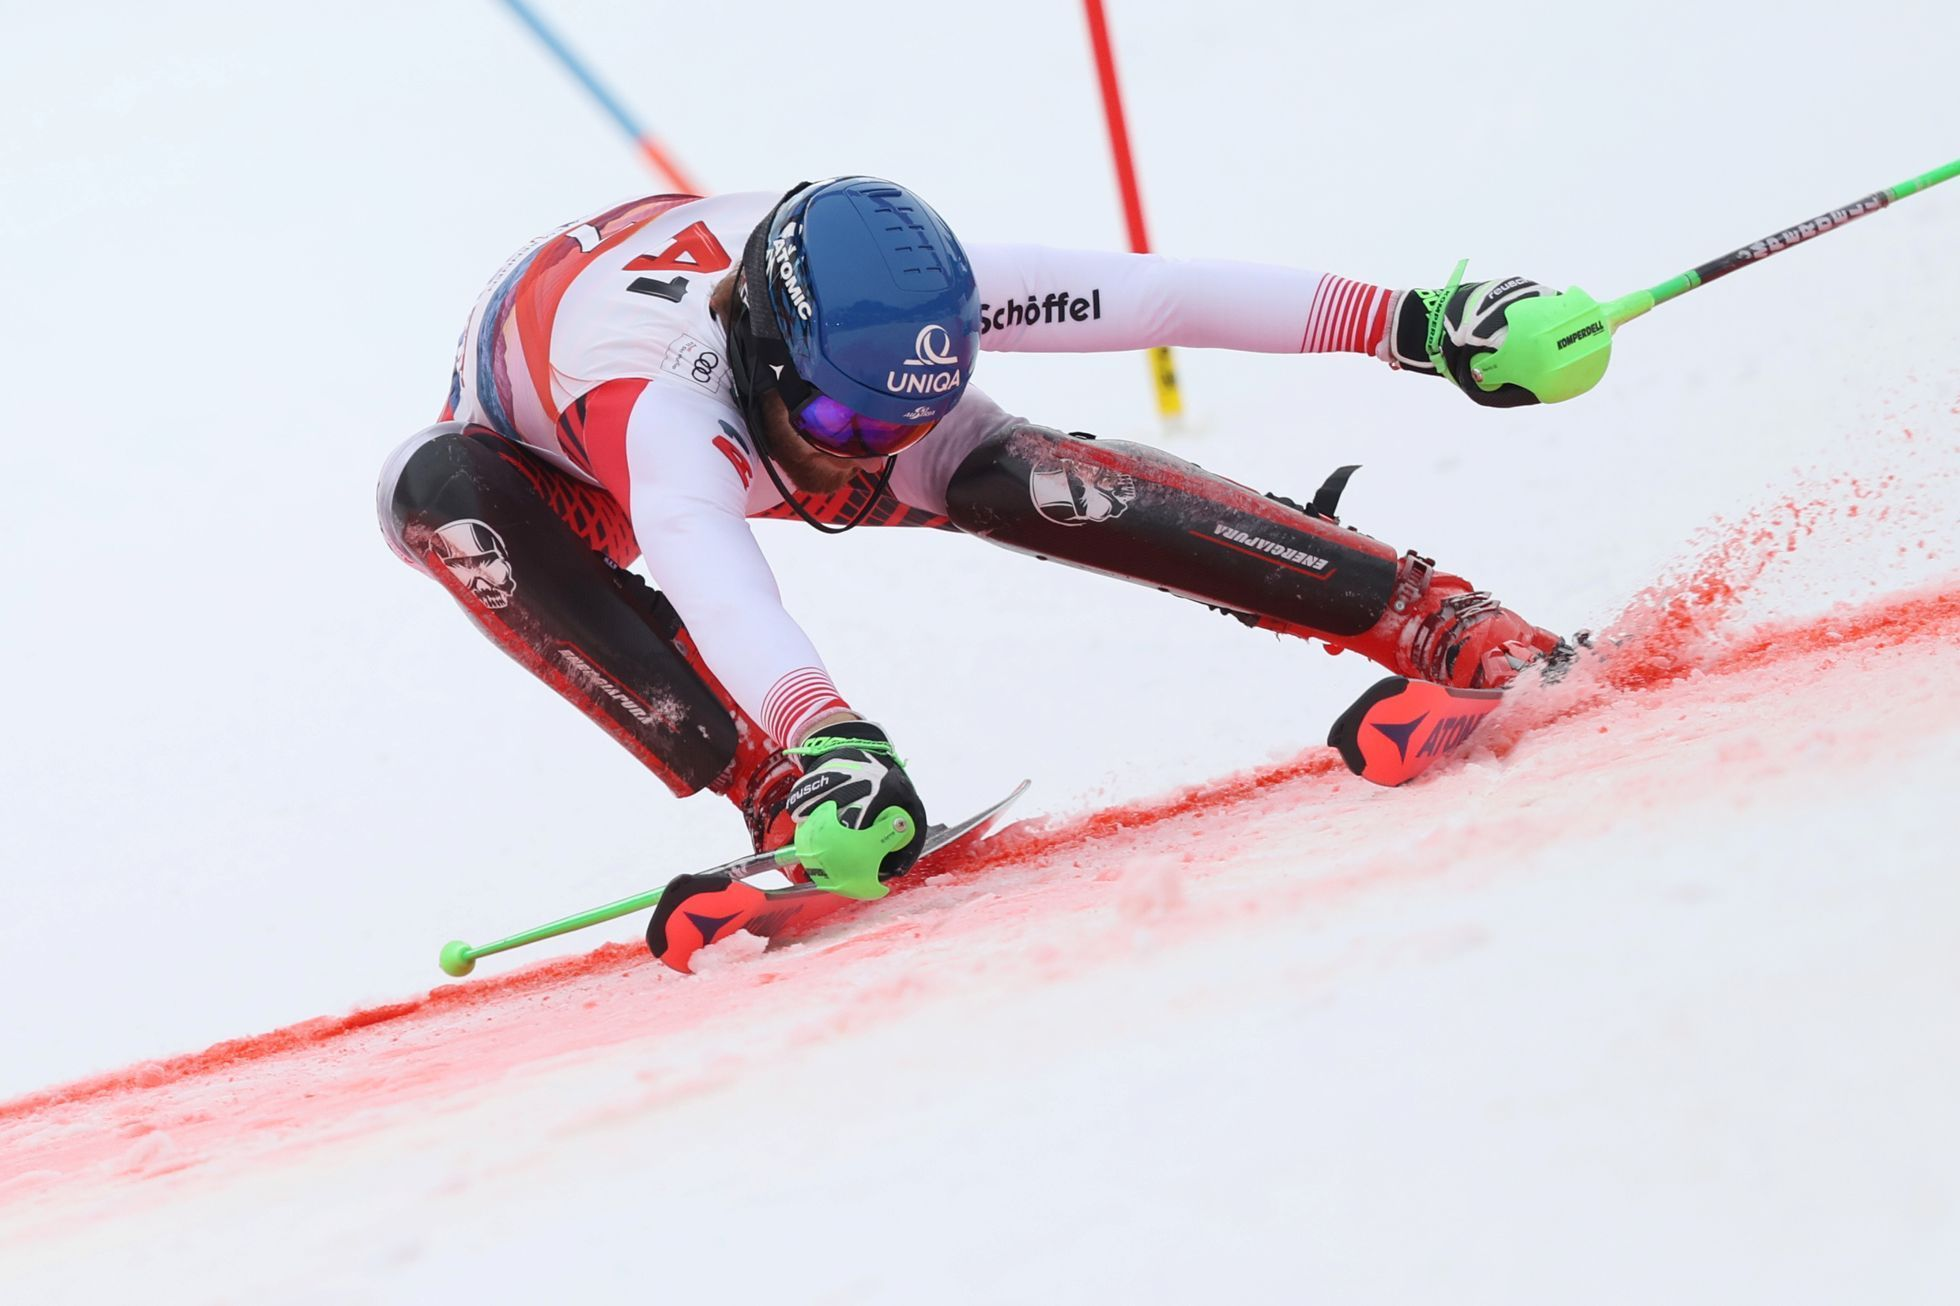 FIS Ski World Cup - Men's Slalom